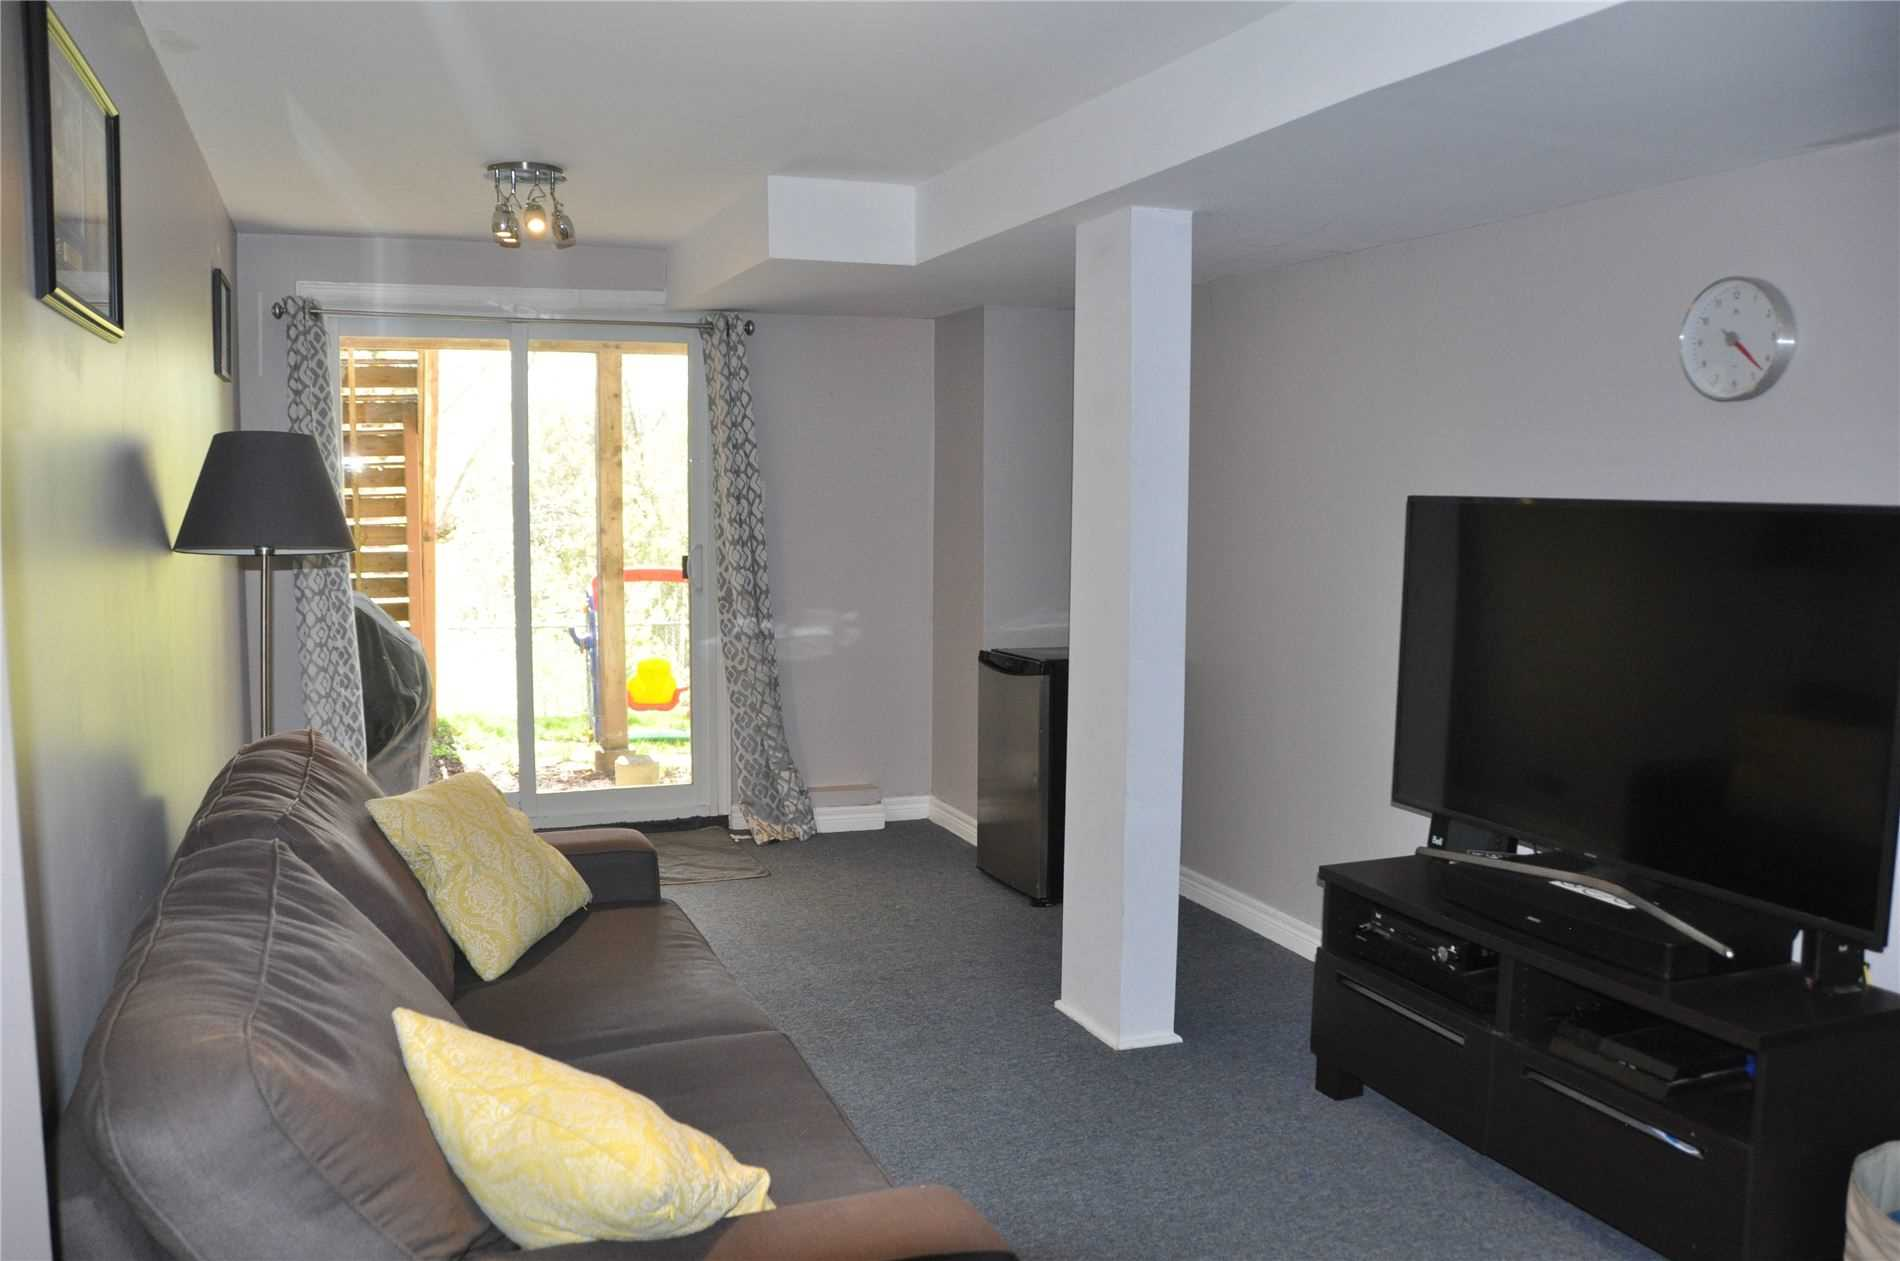 Image 3 of 12 showing inside of 3 Bedroom Condo Townhouse 2-Storey for Sale at 22 Macintyre Lane Unit# 11, Ajax L1T3X3